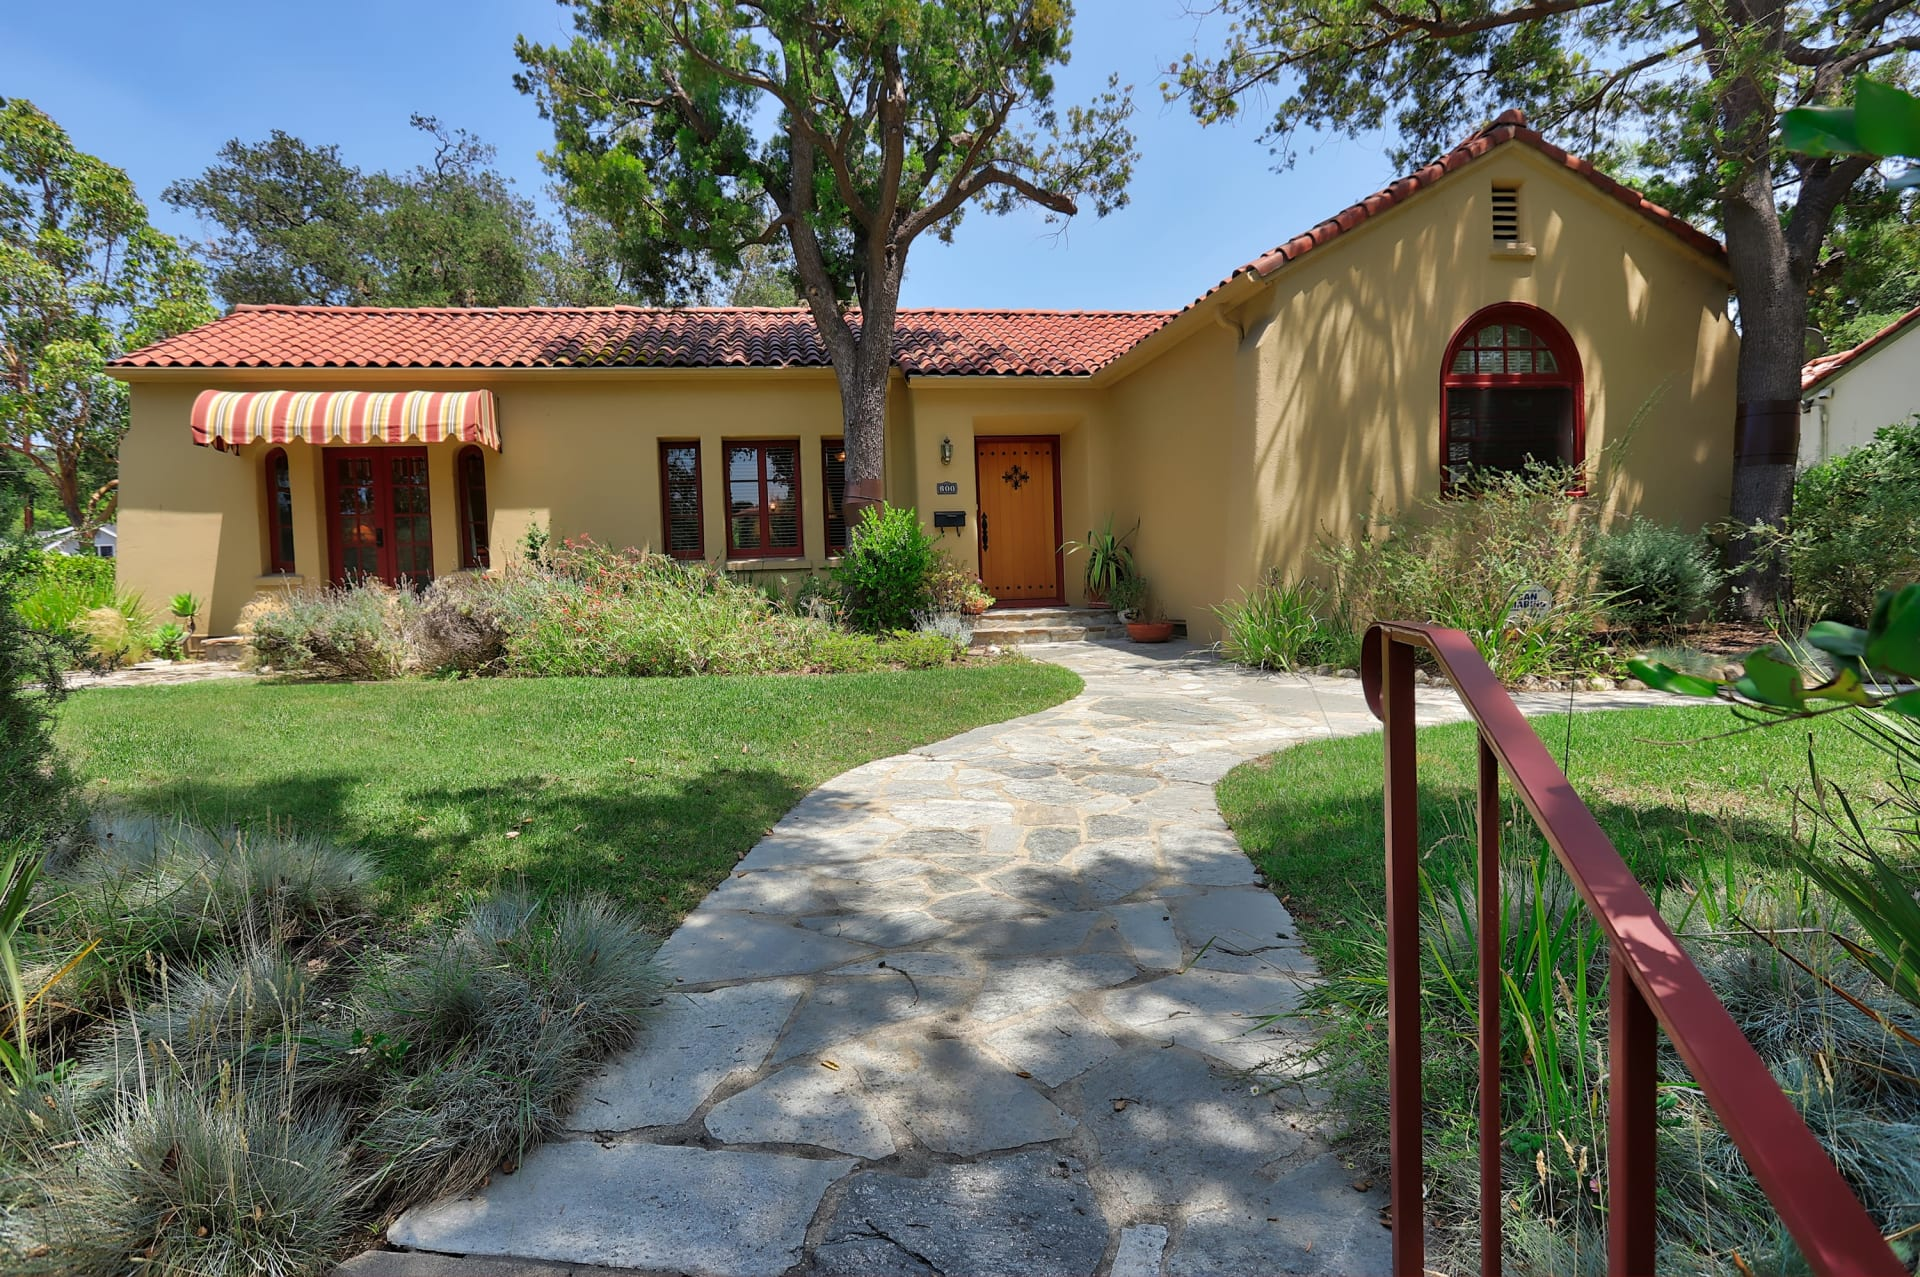 Sold by Edwin Ordubegian-Stunning Character Home in the Pasadena Arroyo Seco | 600 S. Arroyo Blvd. video preview